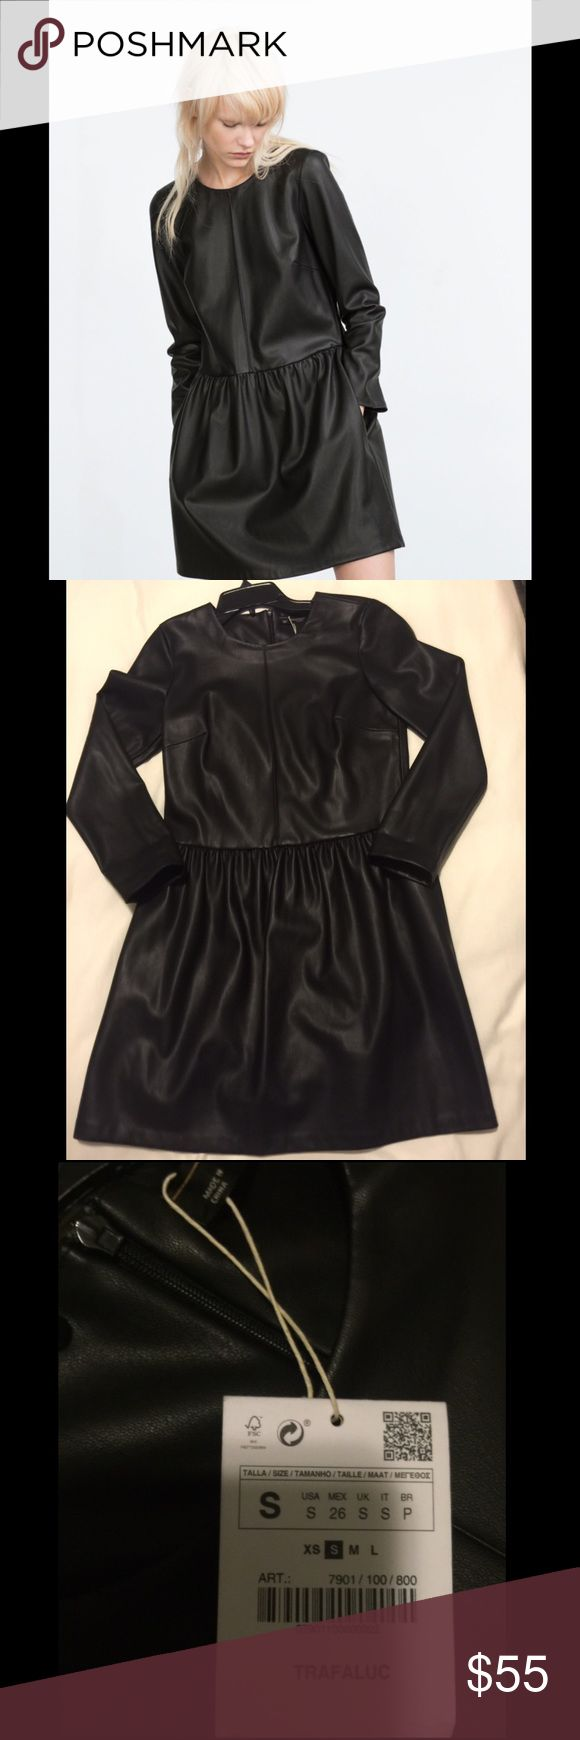 NWT ZARA TRAFALUCA LEATHER DRESS - M NWT ZARA TRAFALUCA LEATHER DRESS - M. This dress is labeled SMALL but it is definitely a medium. I bought for myself and didn't try on and it's definitely not a small but SOO cute I had to Posh. ♏️ - $40 / RETAIL: $88 Zara Dresses